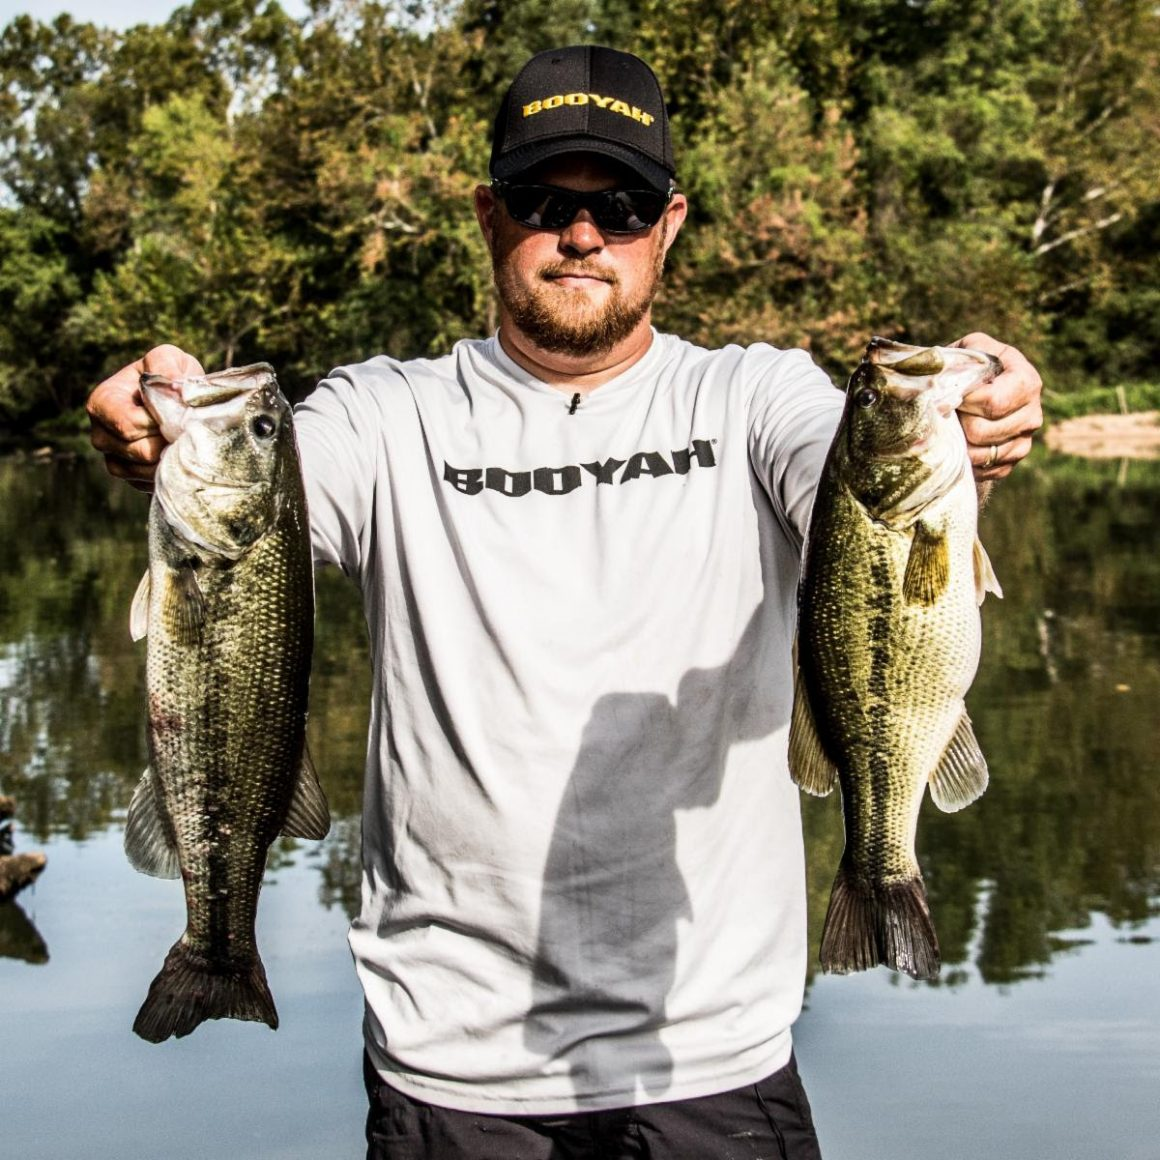 Mobster Jig from Booyah Soon Available